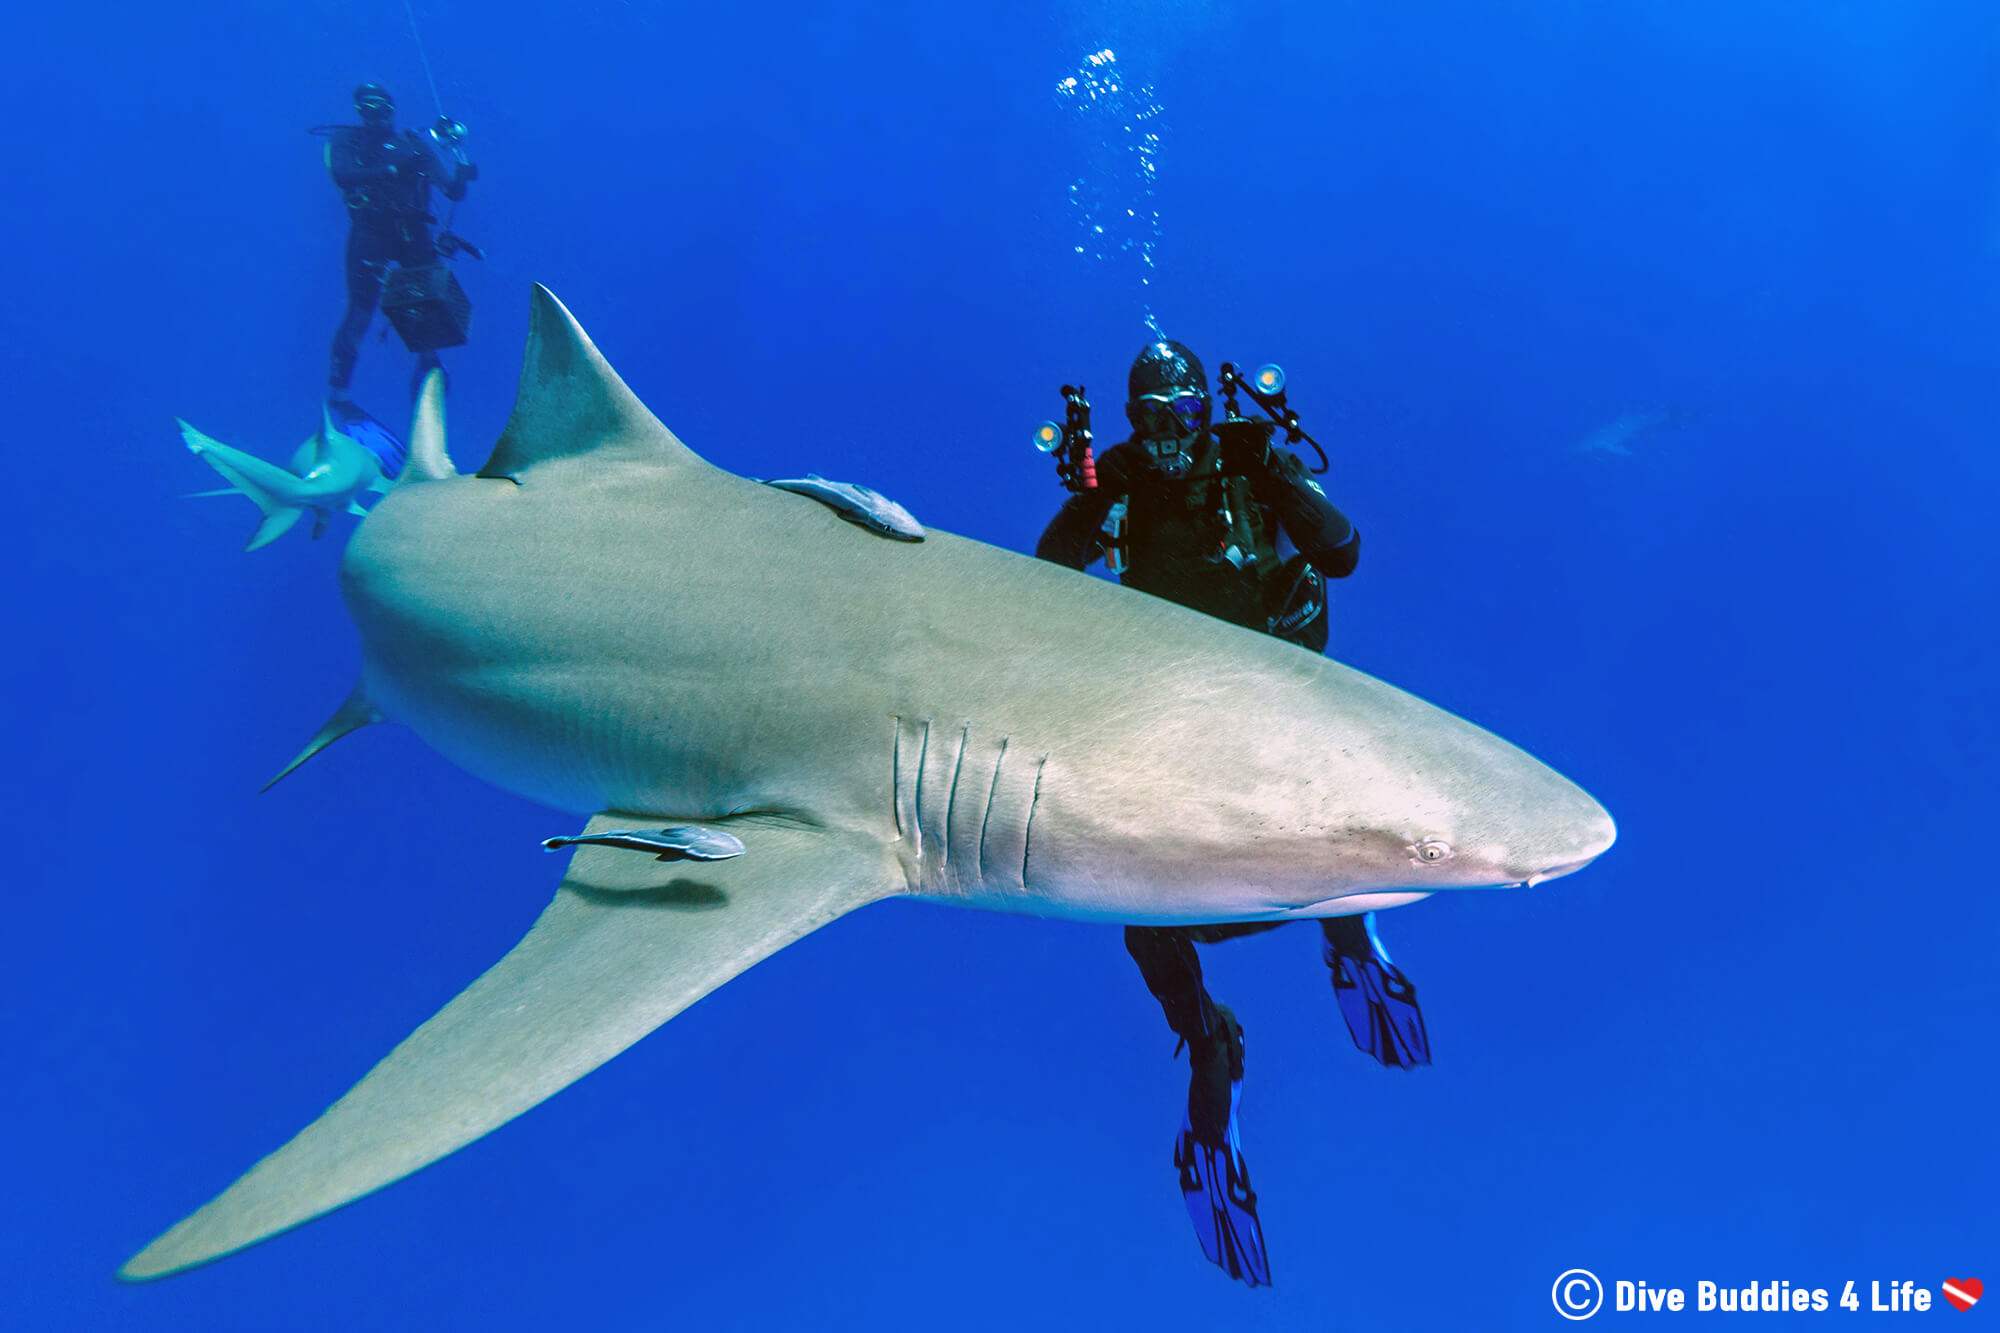 Scuba Diver Joey Filming A Lemon Shark Circling Us Underwater On A Shark Feed Dive In Jupiter, Florida, USA